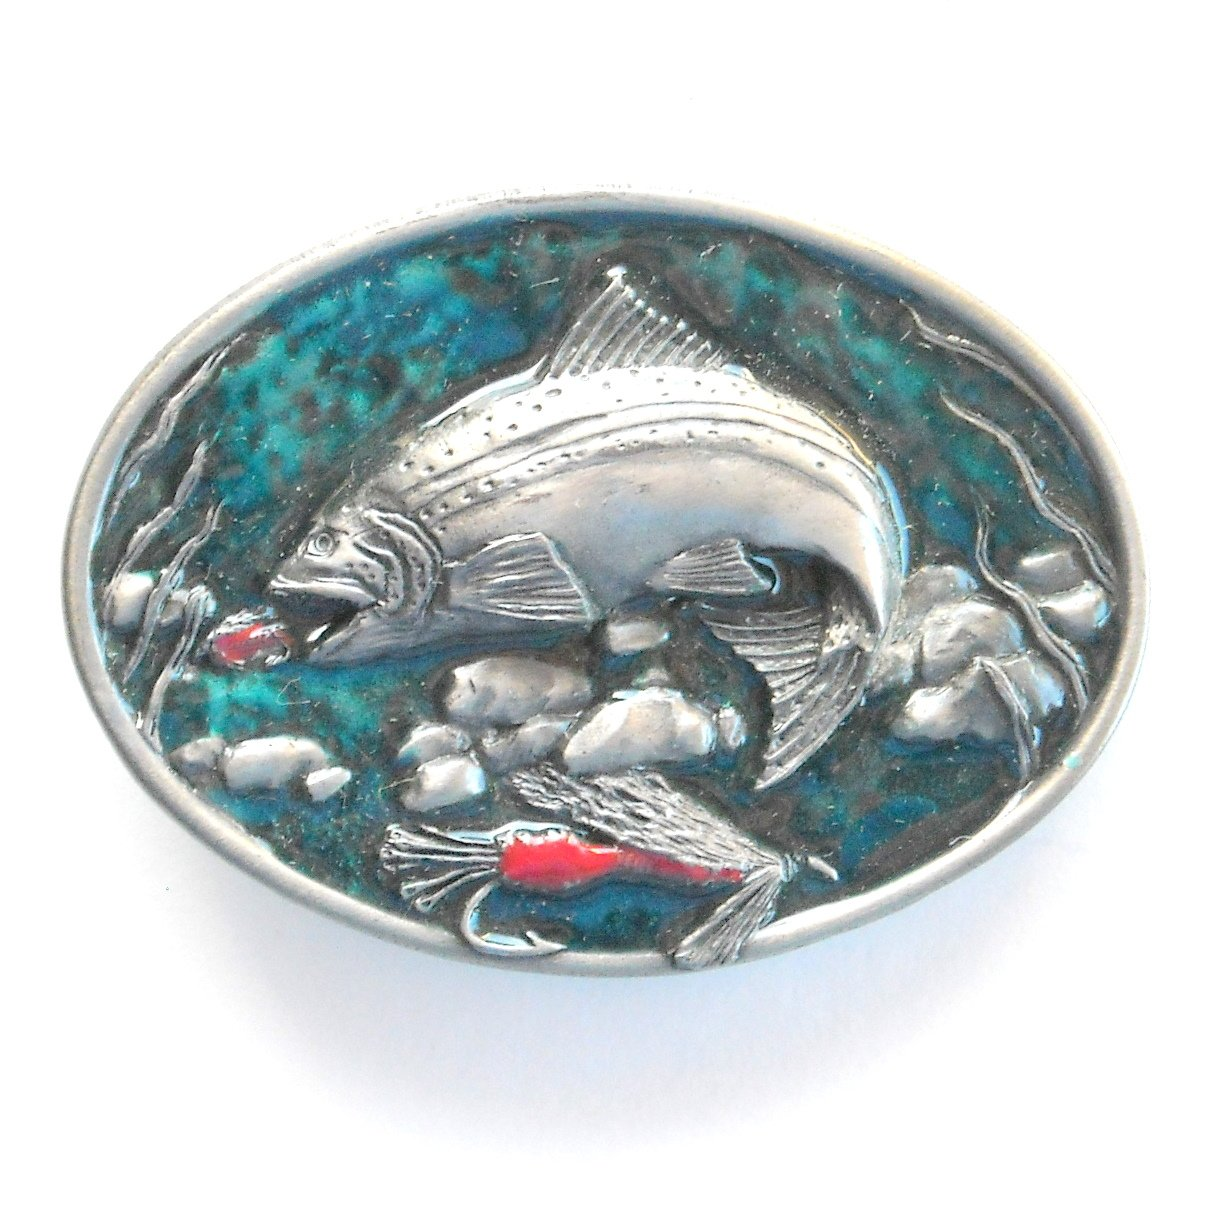 Jumping Chinook Salmon 3D Vintage C & J metal alloy belt buckle